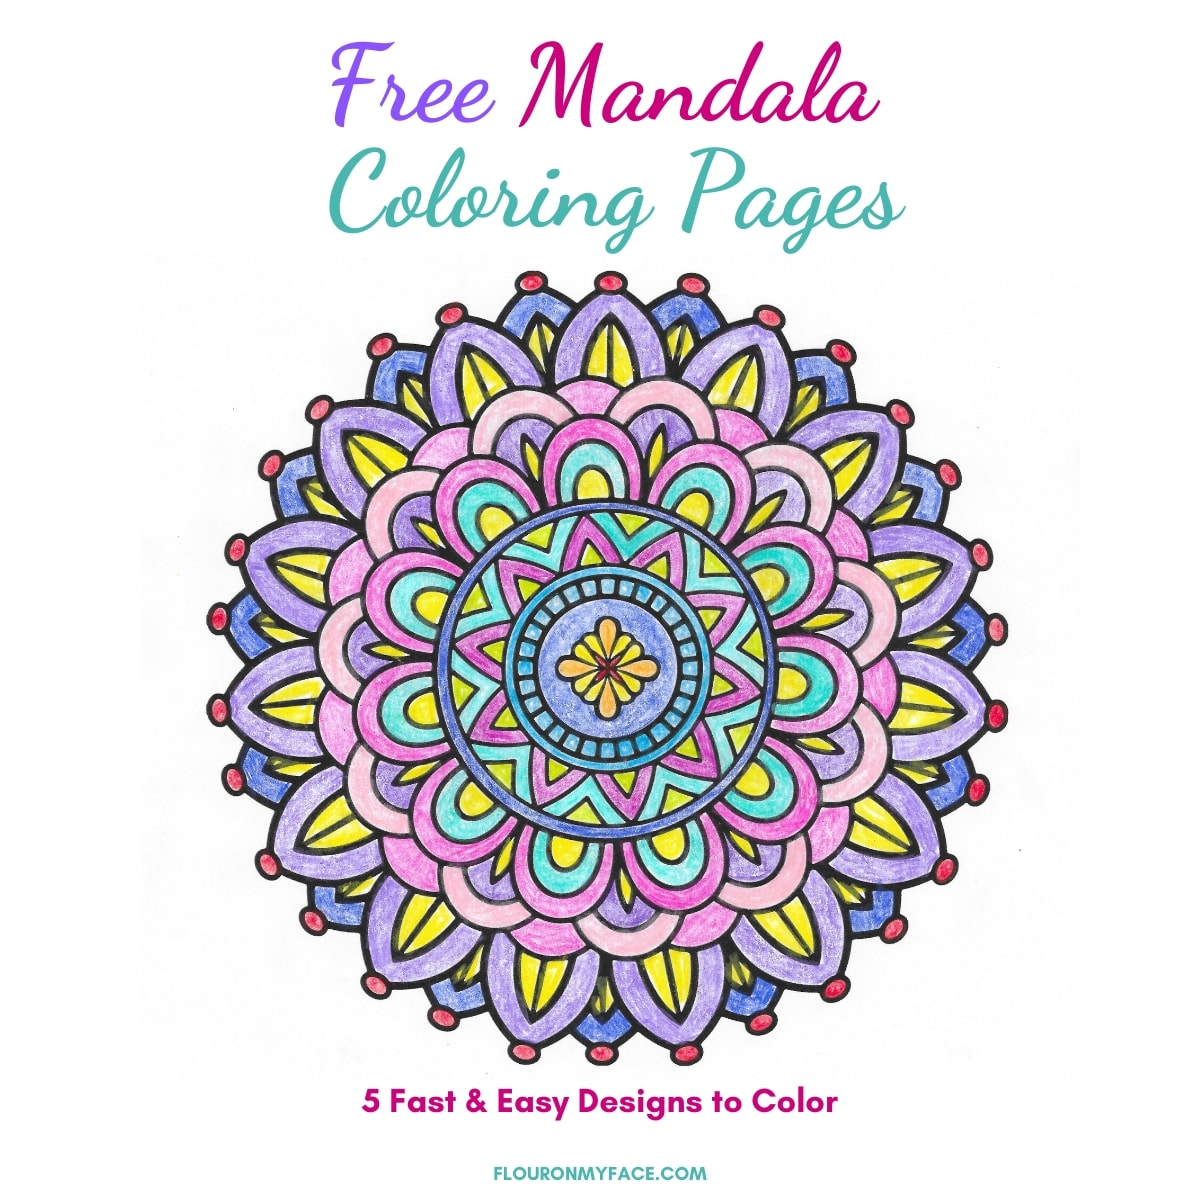 Free Mandala Coloring Pages Flour On My Face